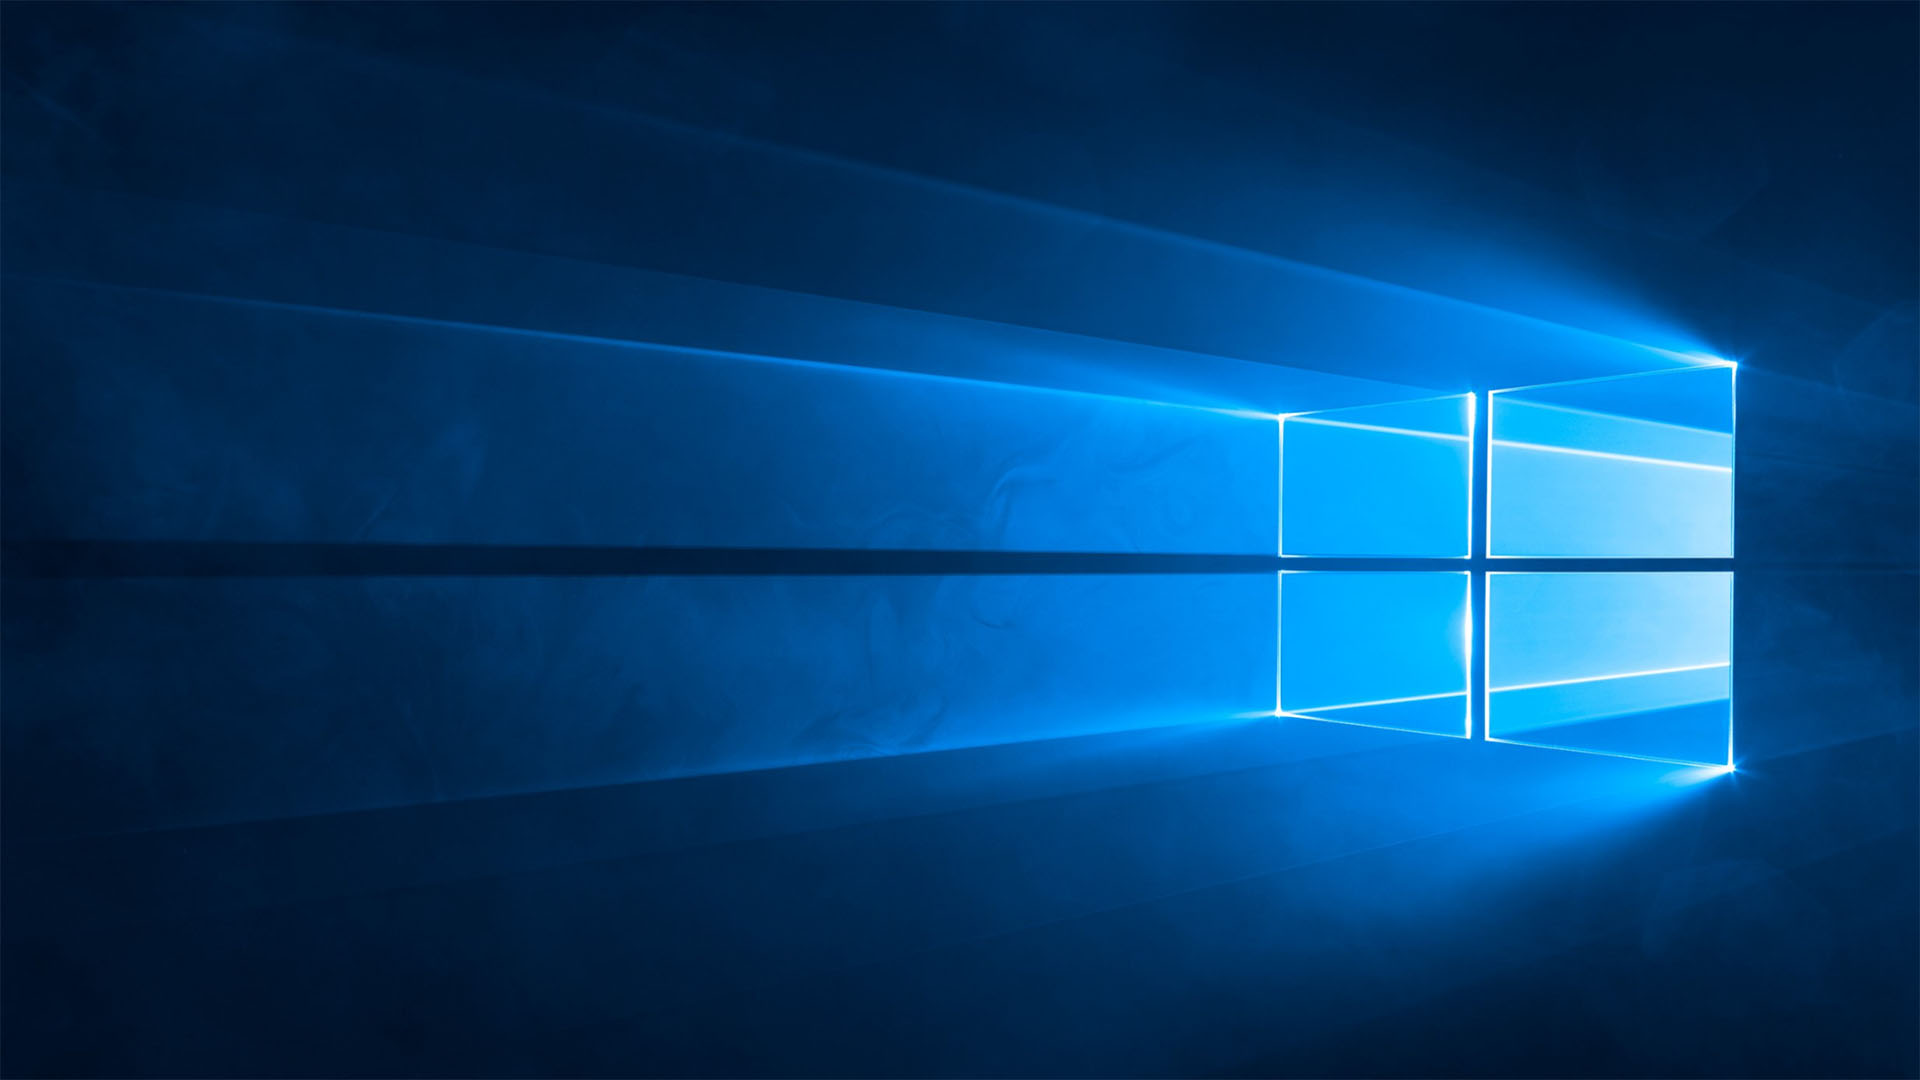 Microsoft accidentally ruins PC gaming performance in latest Windows 10 update